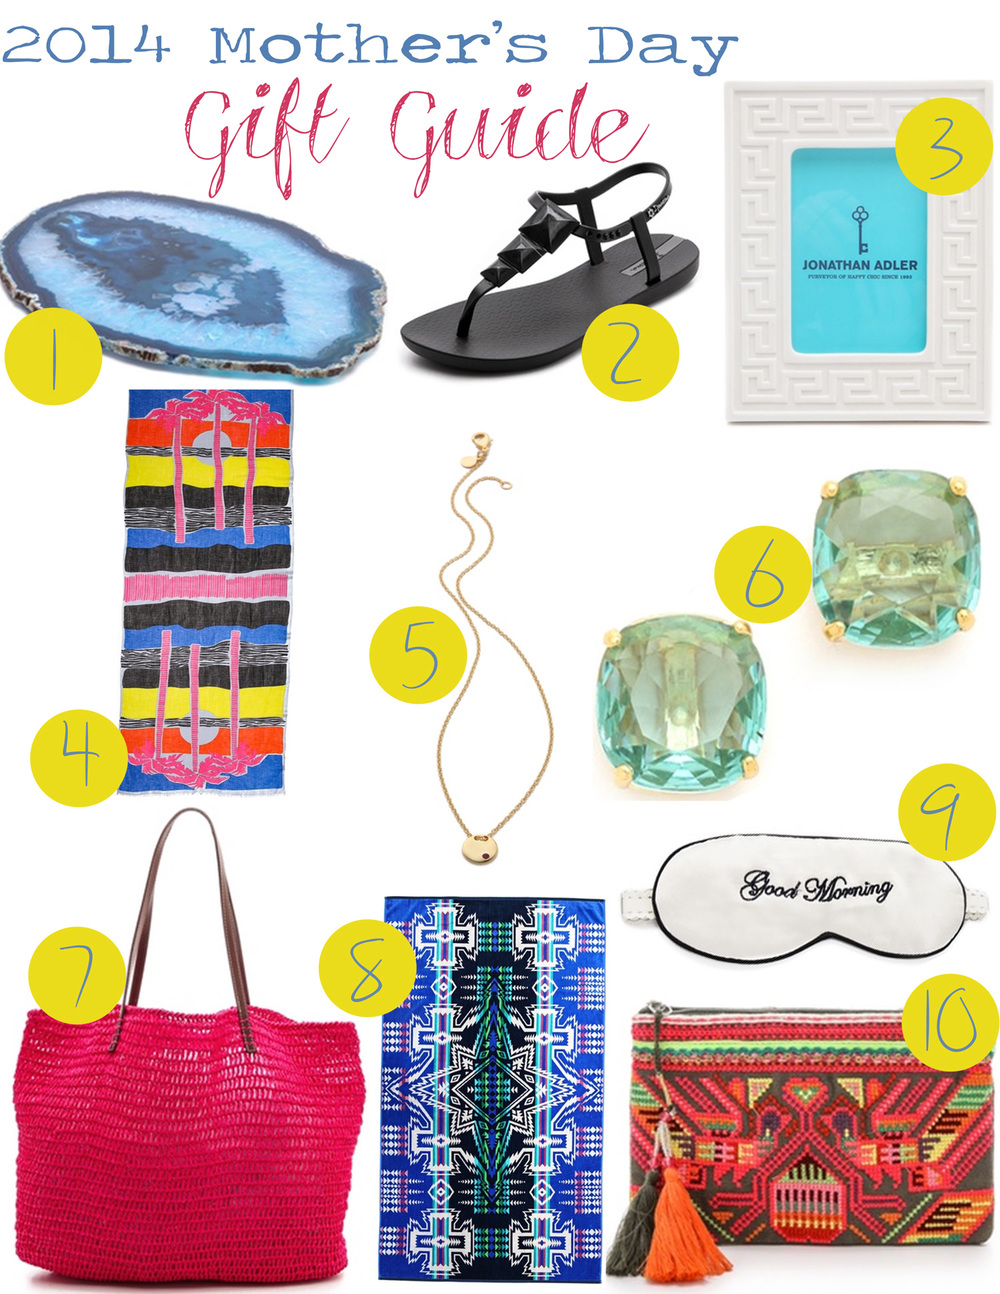 Pin it! Gift ideas for mom, and they're all on sale!